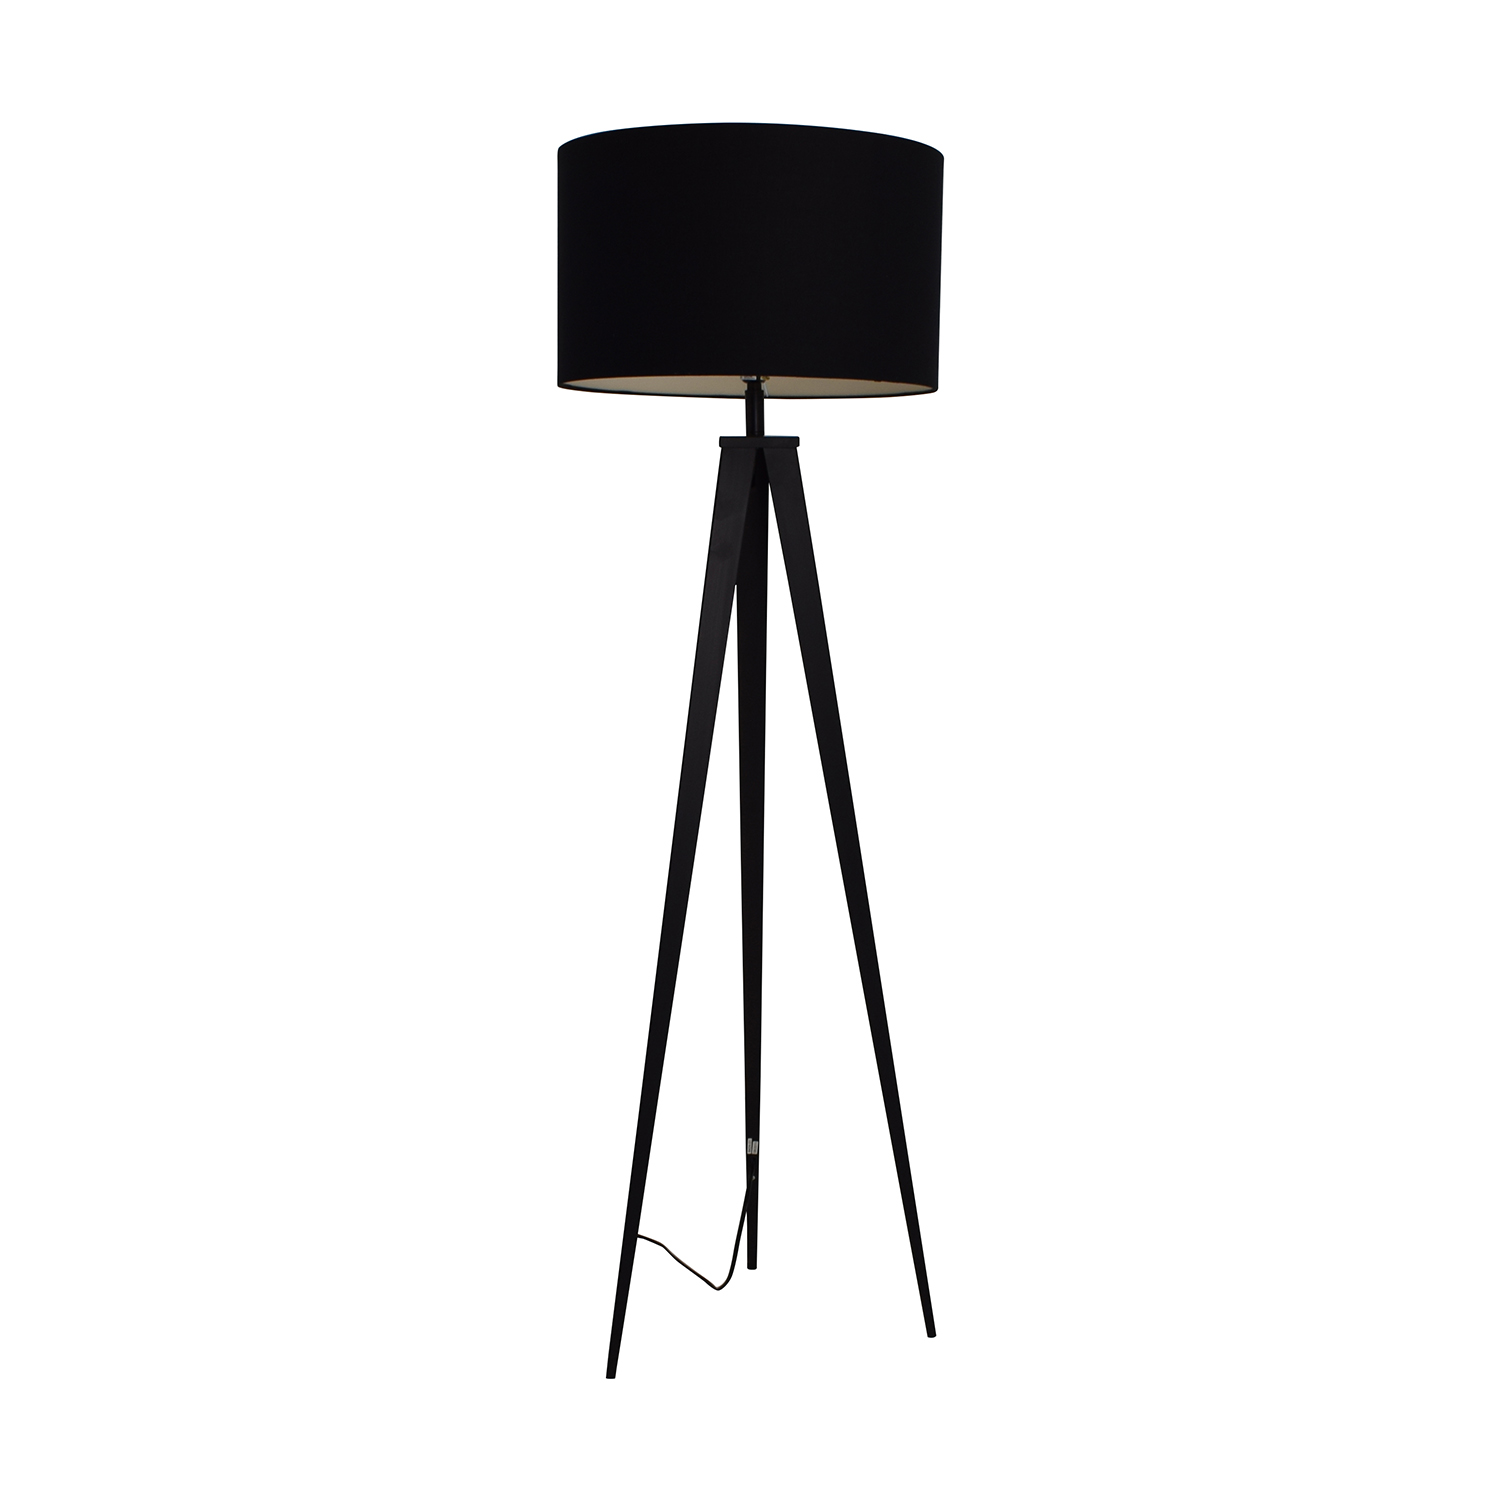 51% OFF - Tiered Lamp / Decor